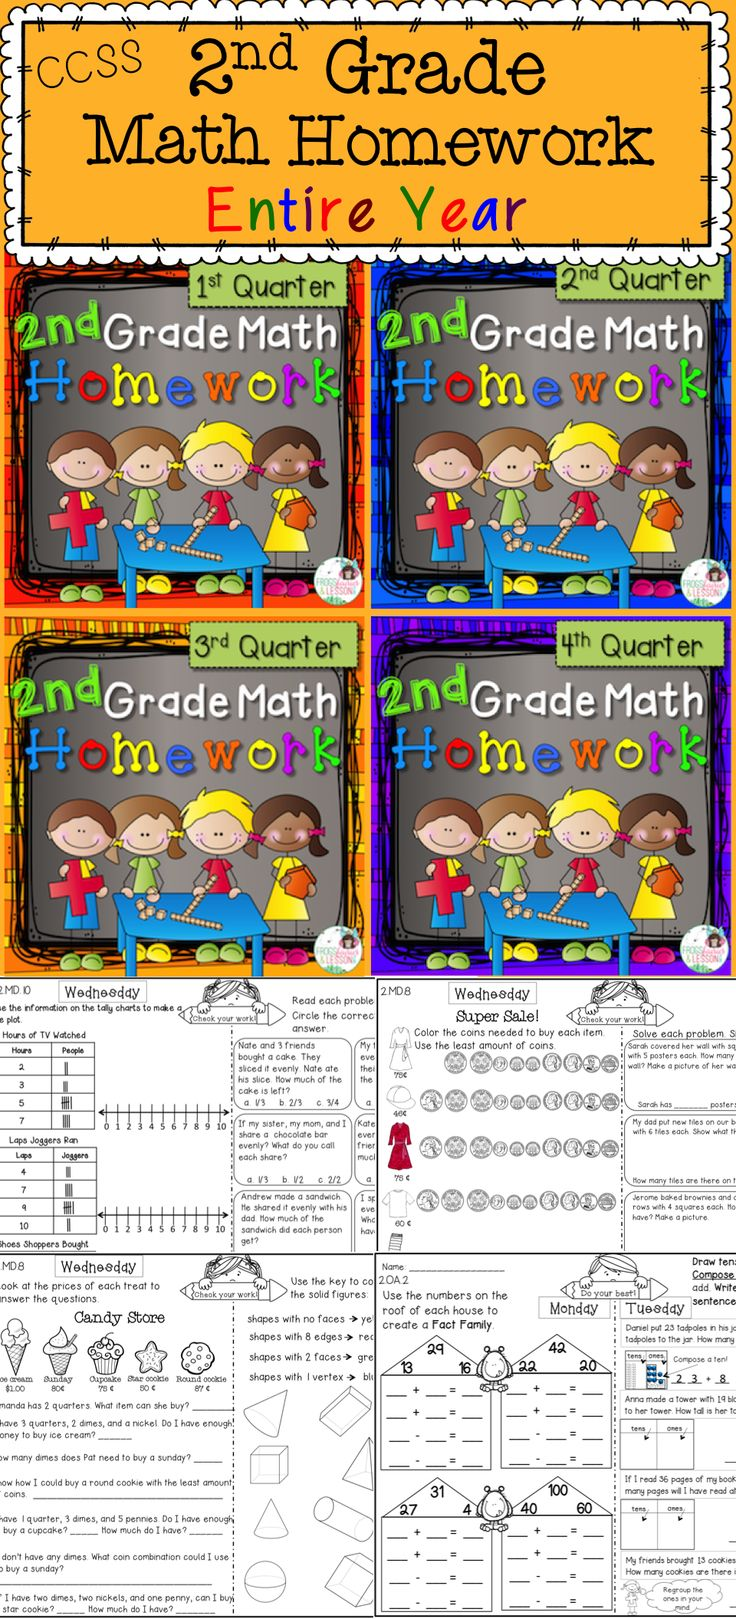 Math homework for the entire year! This resource is a one-page-per-week, one-CCSS domain-per-day, all year homework! Easy for students and parents to understand. Child friendly, but packed with work.